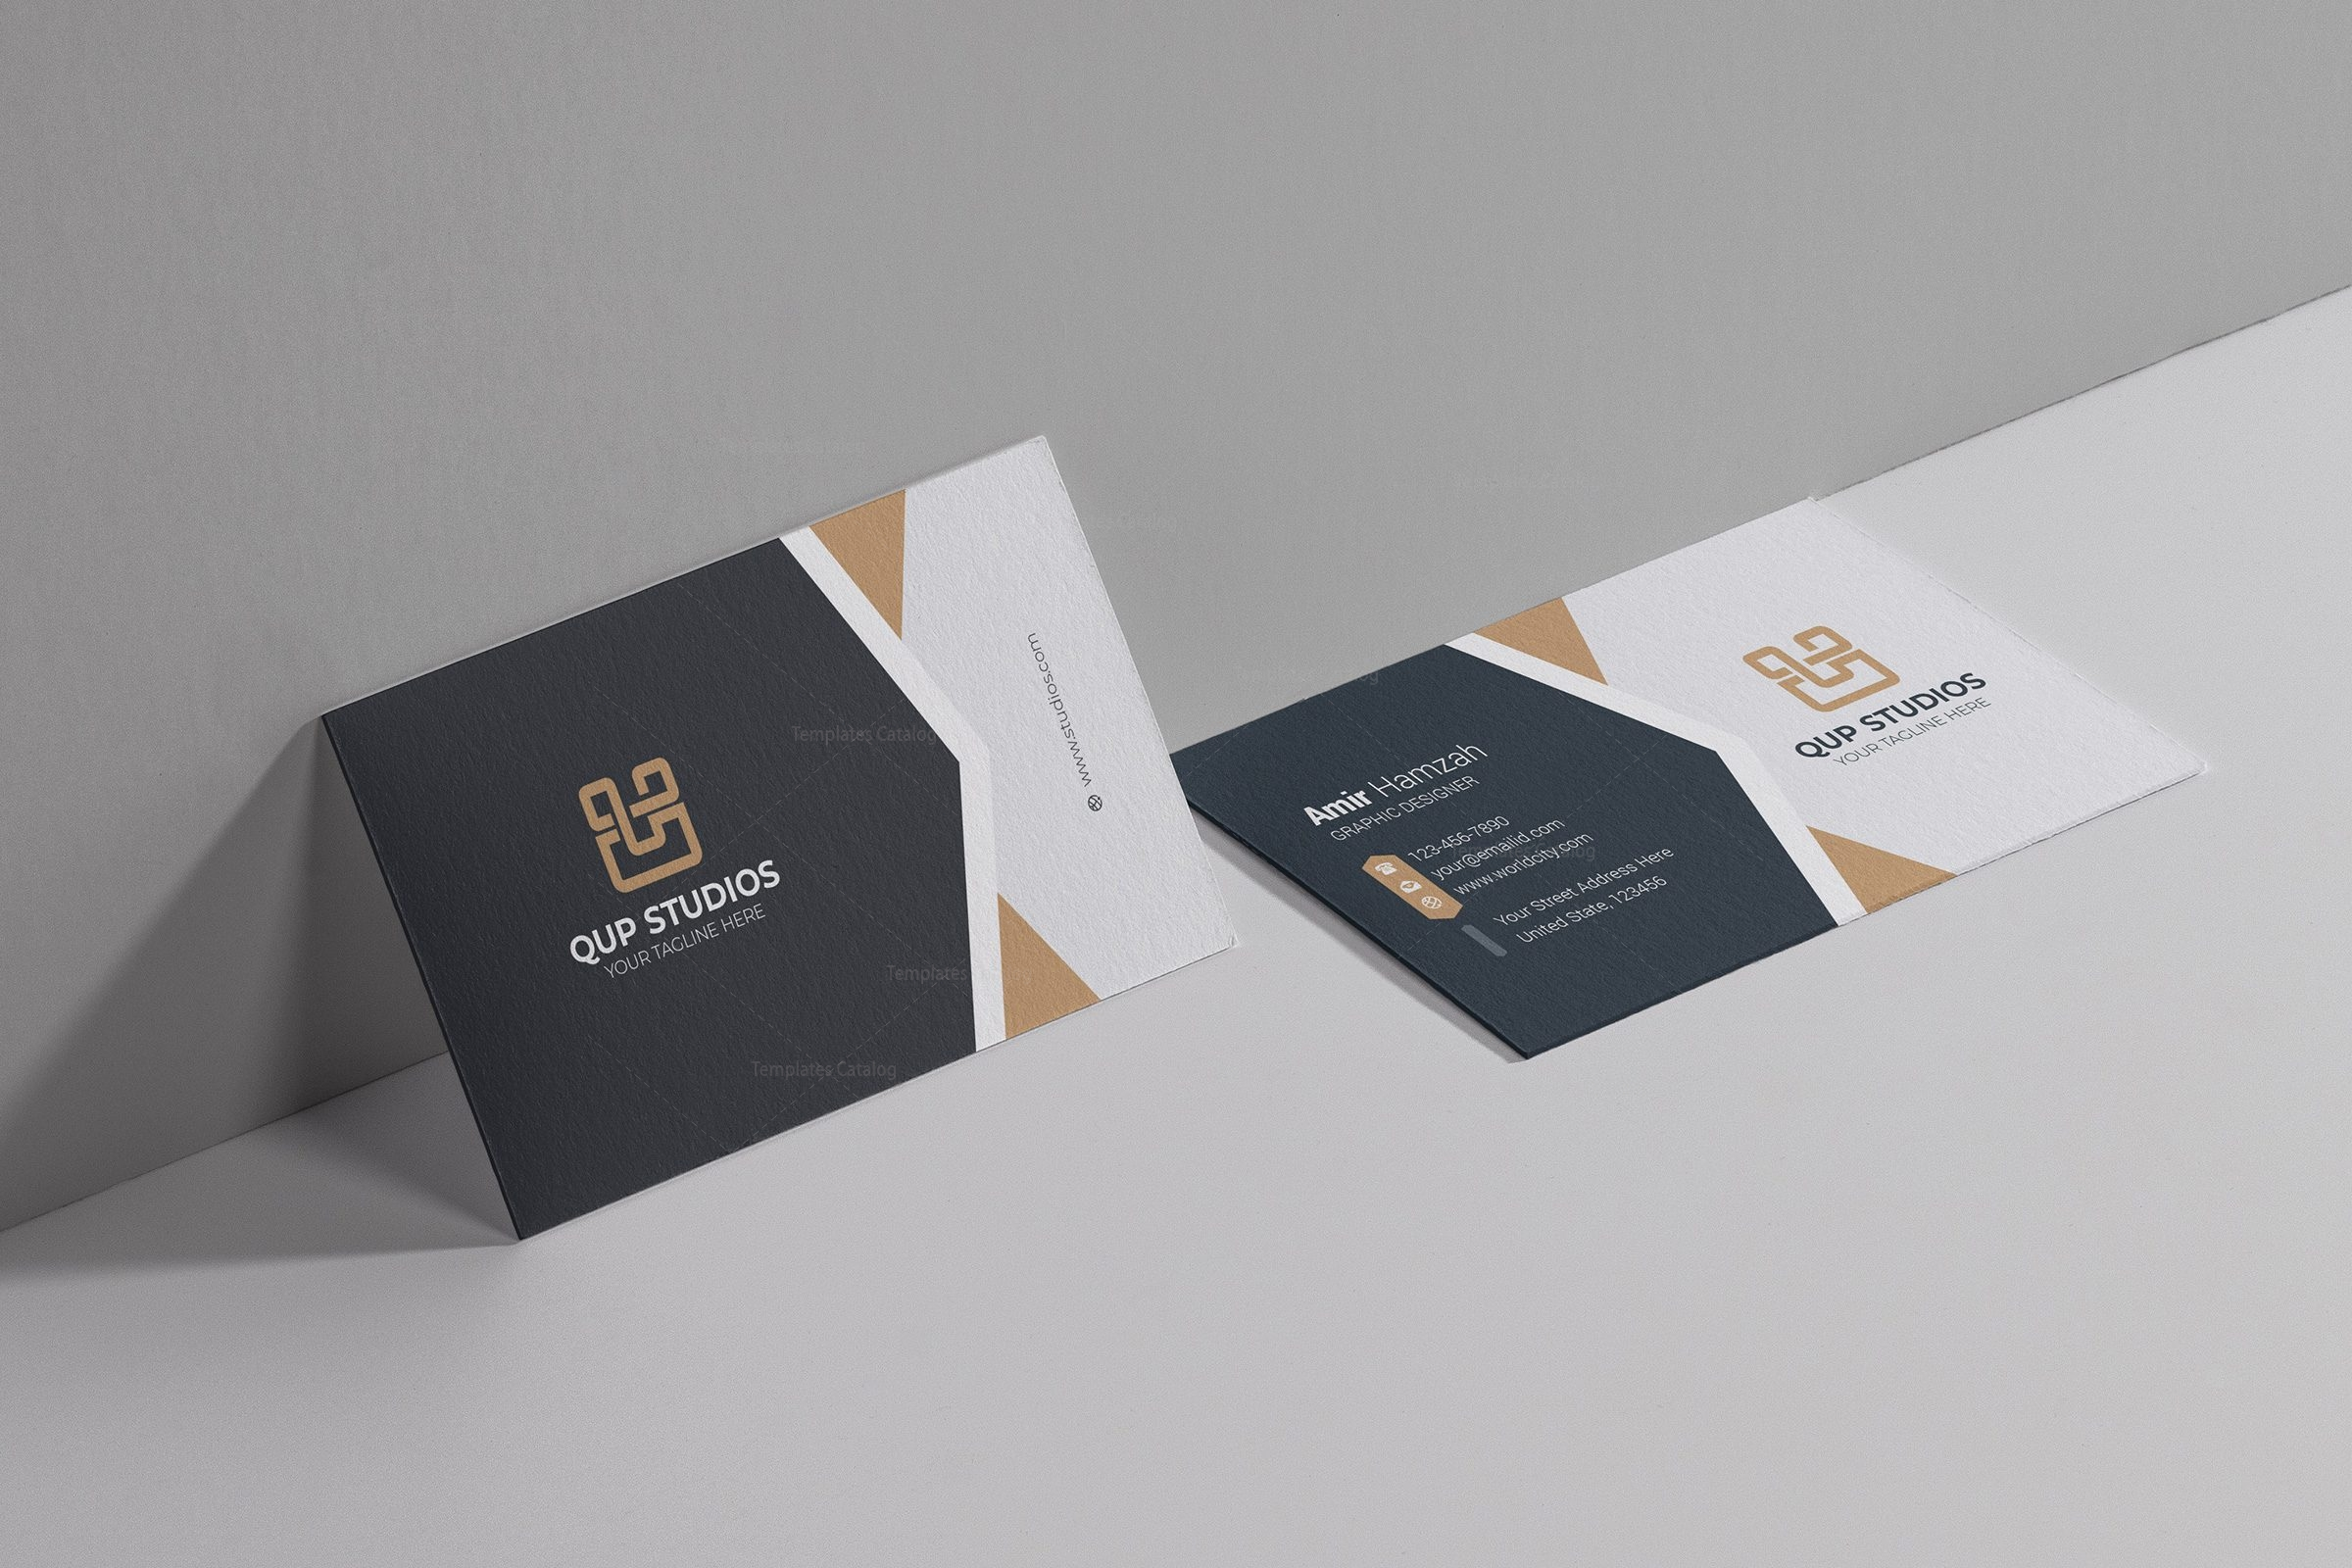 Studio professional business card design template 001786 template studio professionals business card design templates 1 wajeb Choice Image